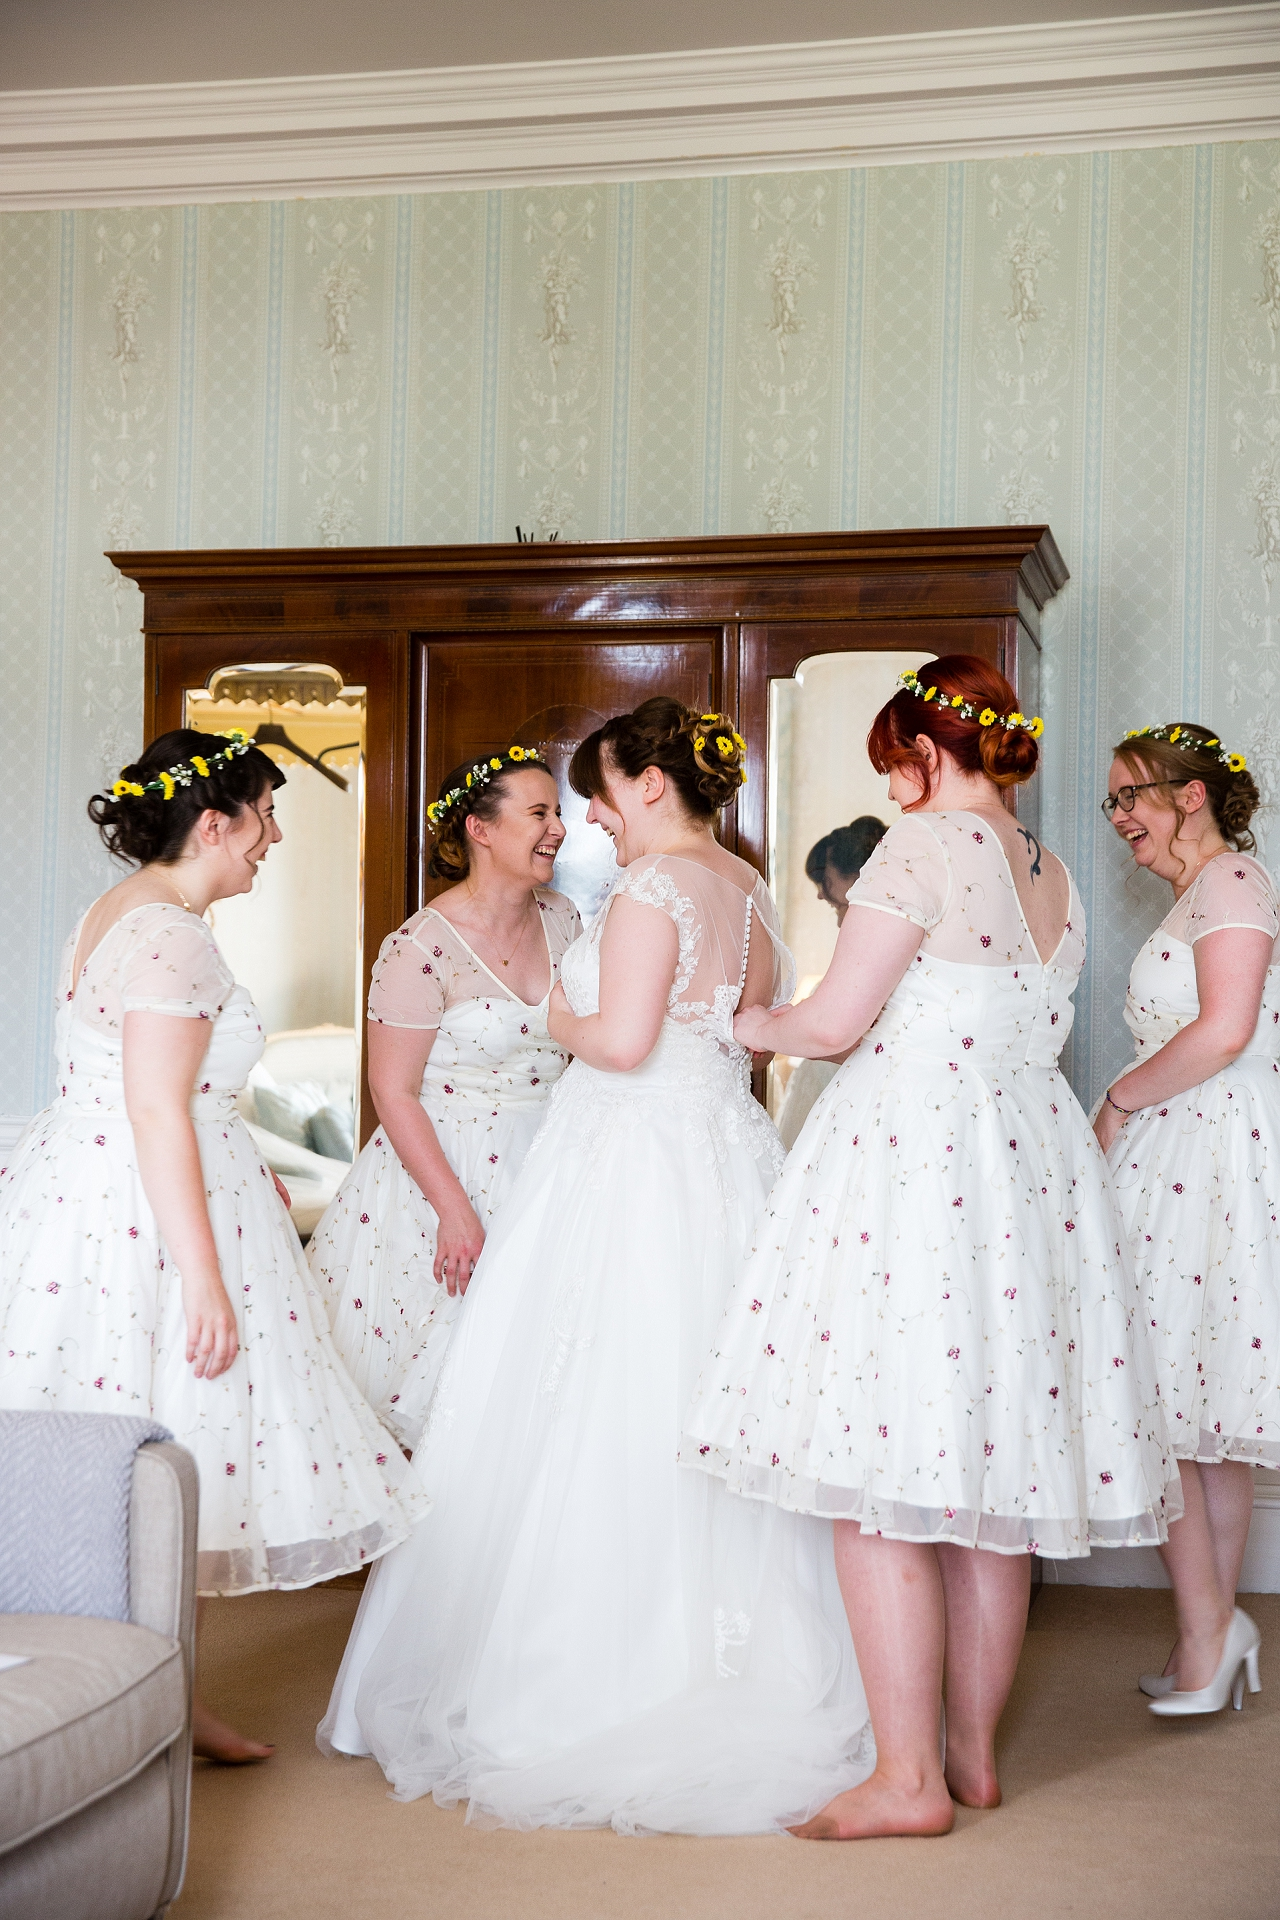 1940's style bridesmaid dresses